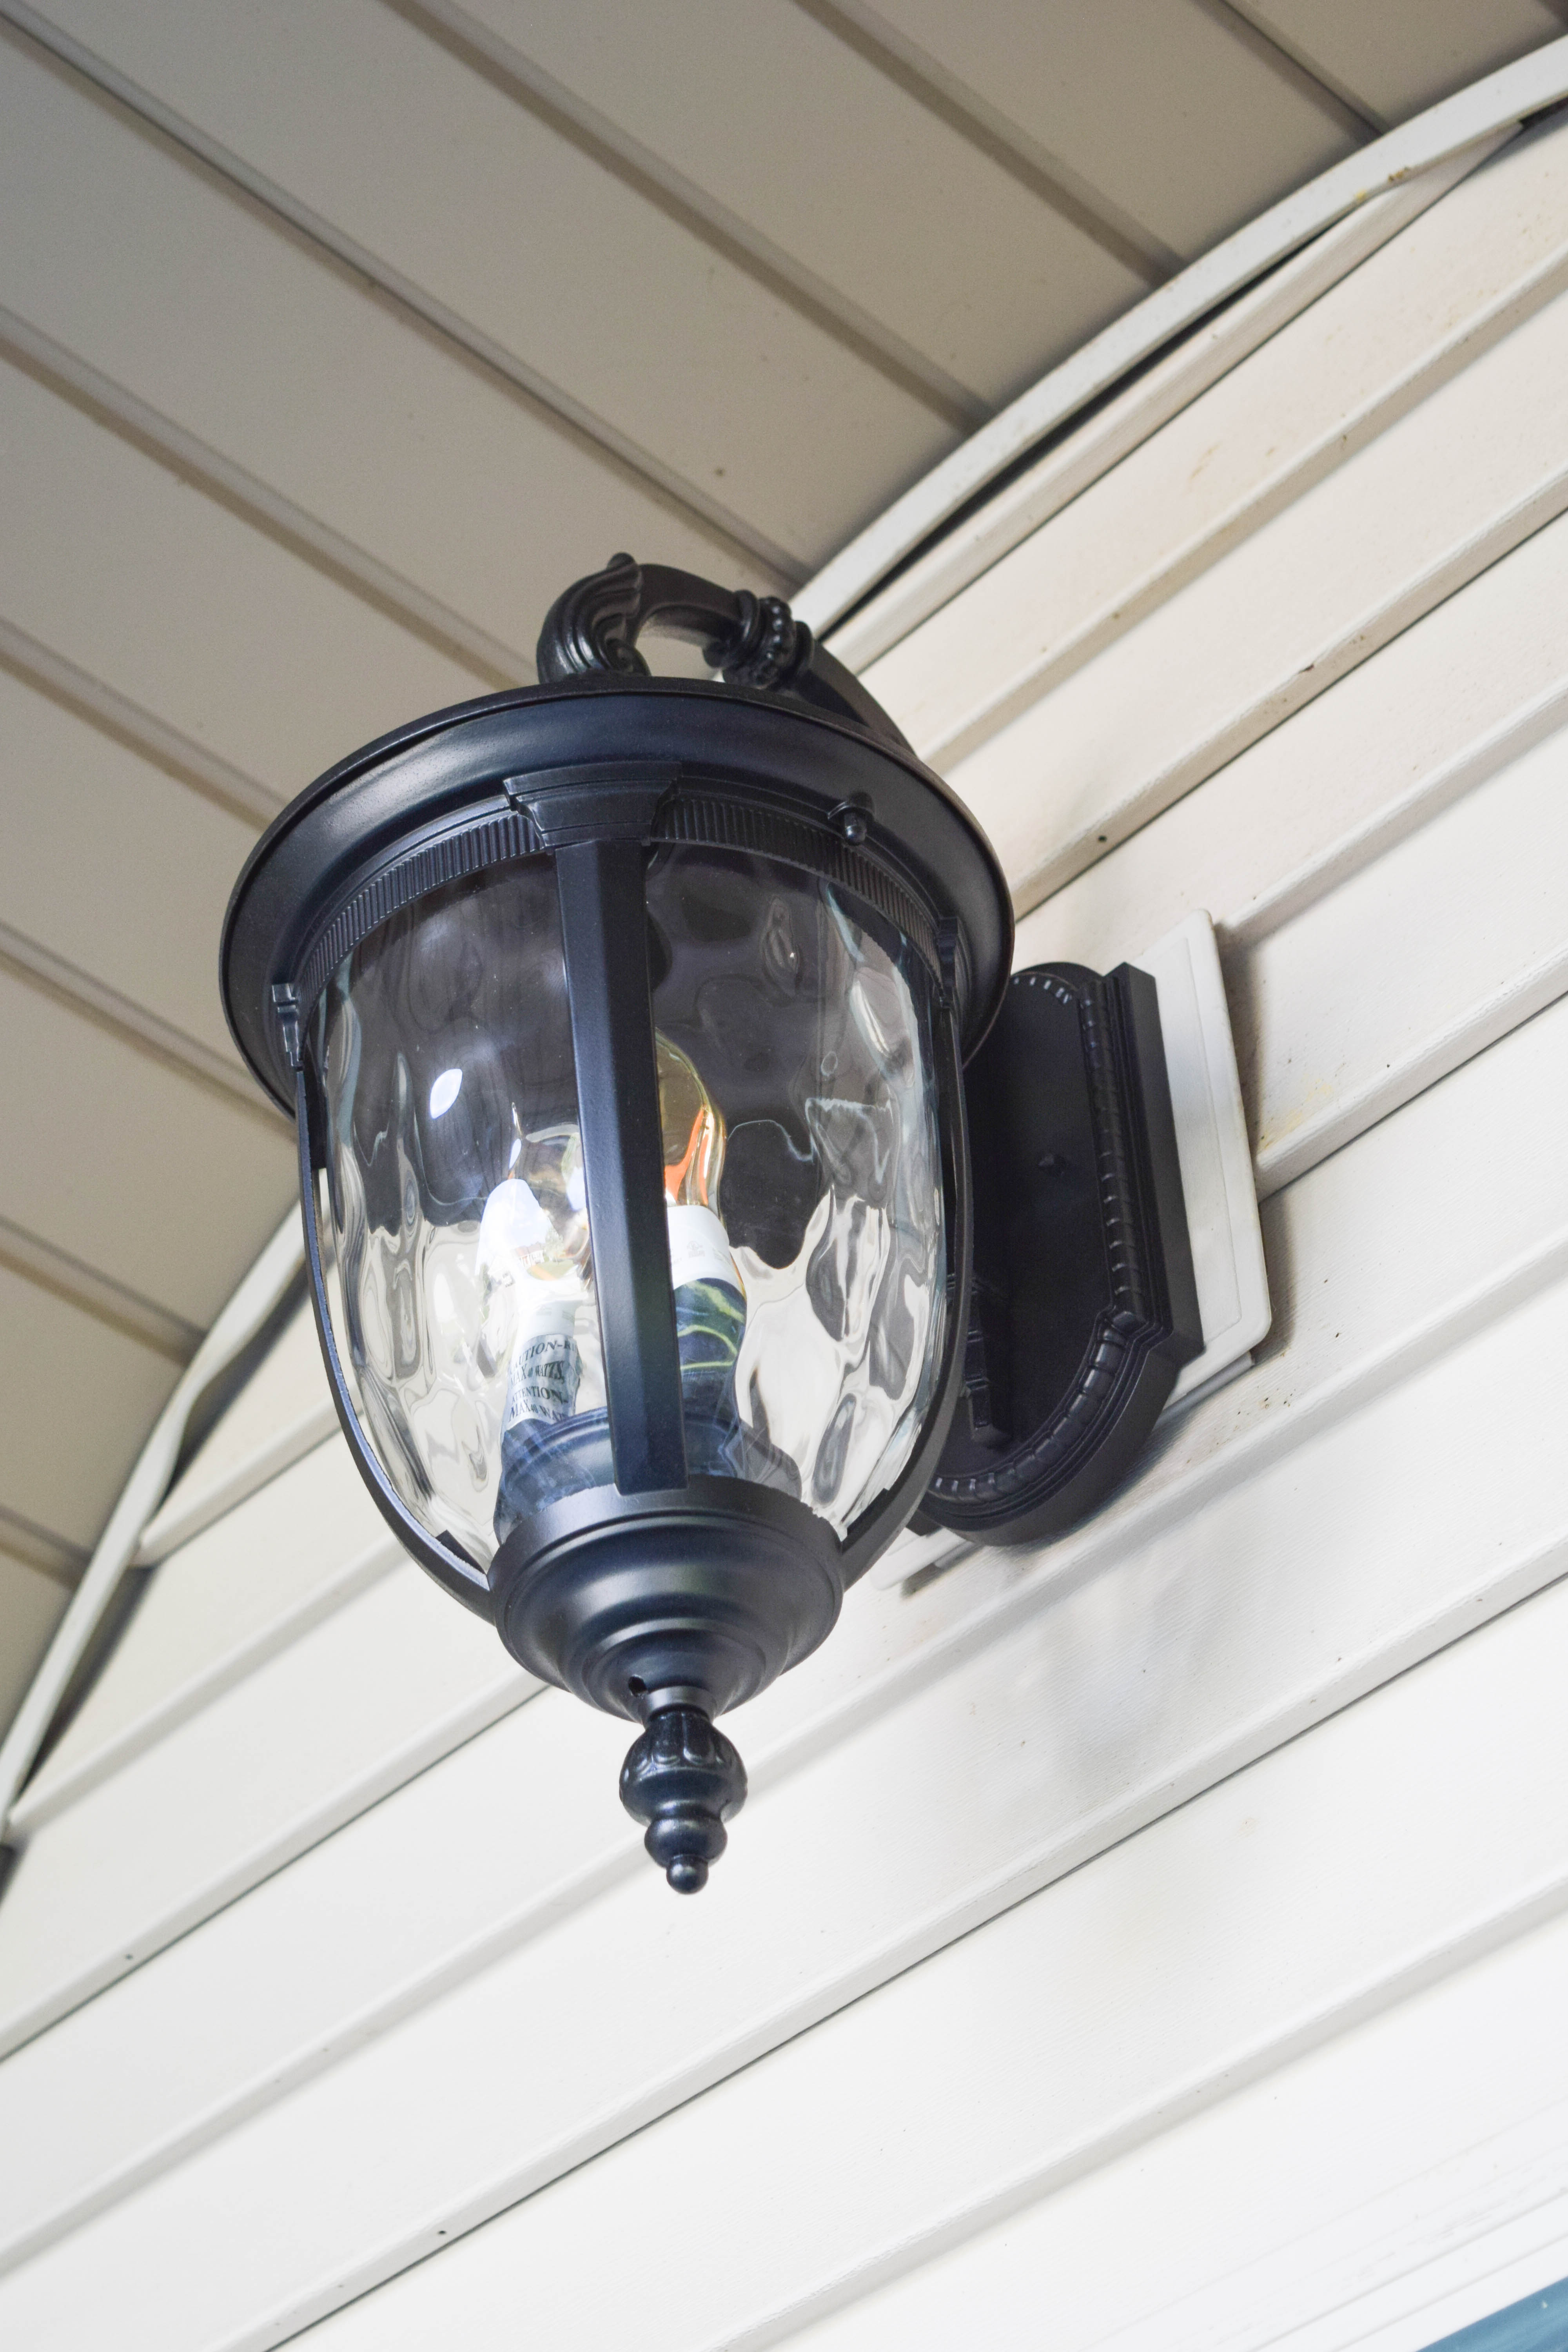 Do you already have led lighting inside the house part 1 come - We Also Updated The Lighting In The Front Of The House The Same Light Fixtures Are There But They Now Have Led Bulbs As Well Which Makes Me Feel So Much